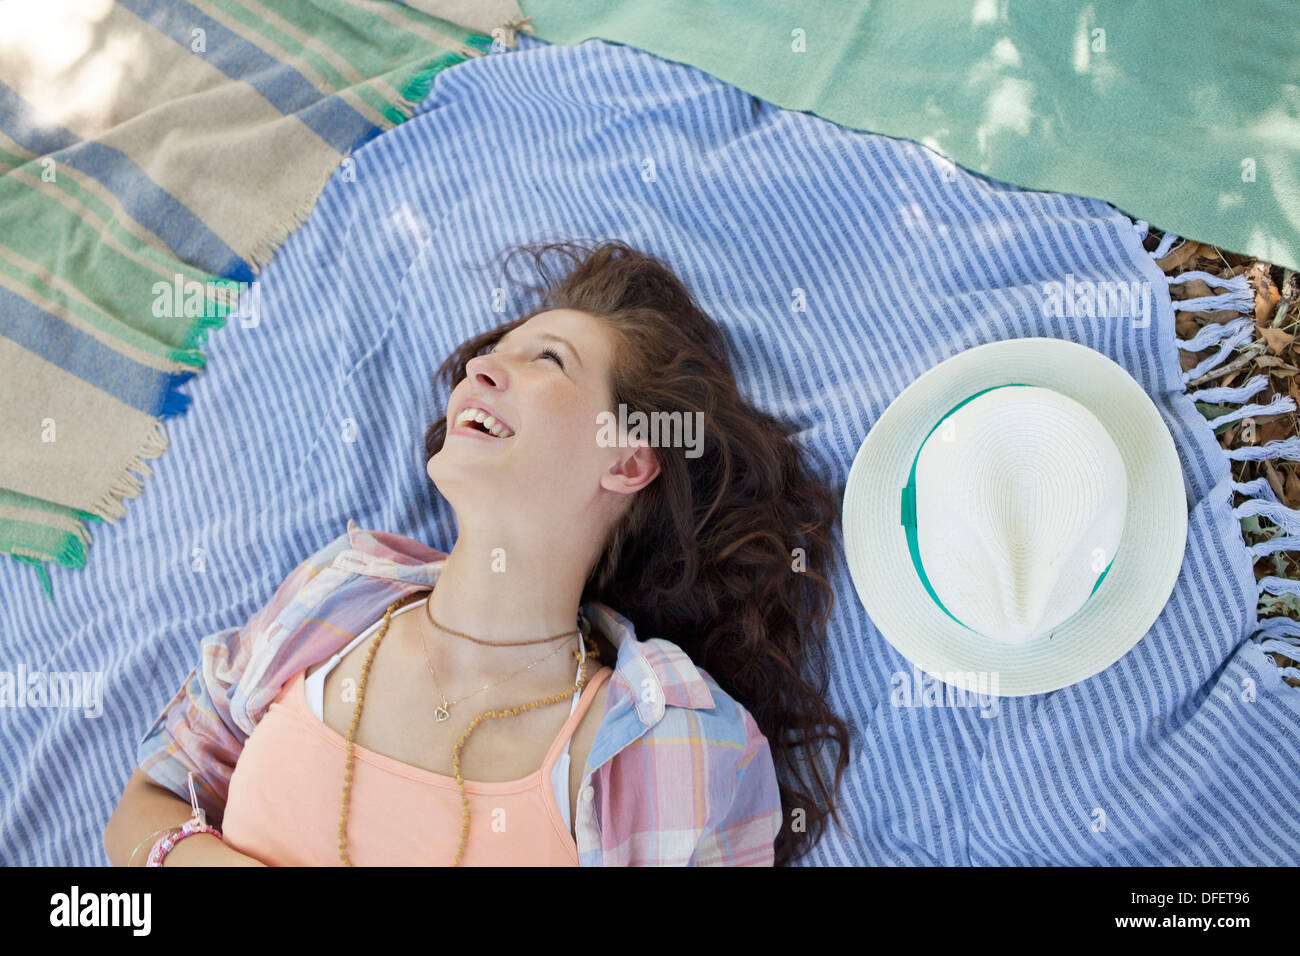 Woman laying on blanket outdoors - Stock Image